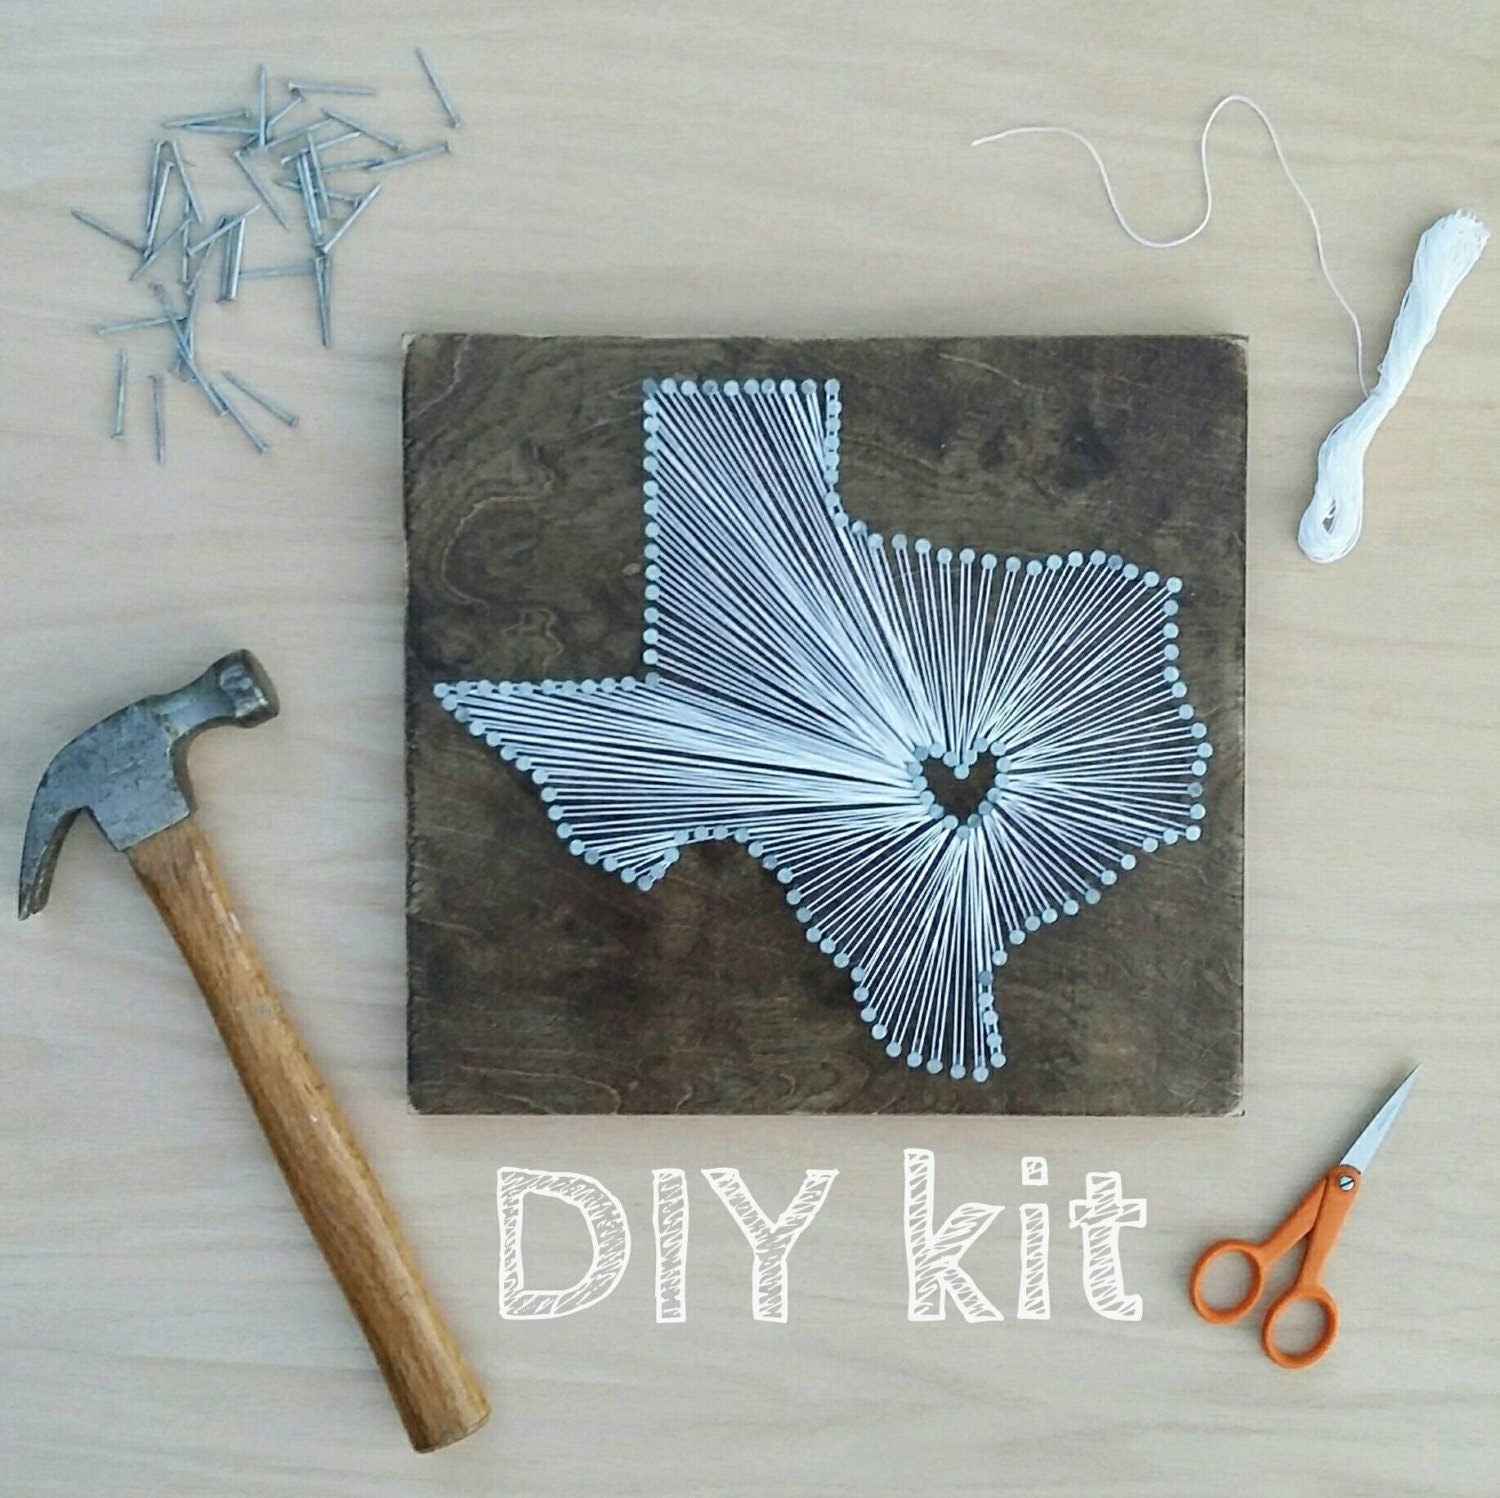 Diy texas string art kit state string art kit texas nail for Diy nail and string art